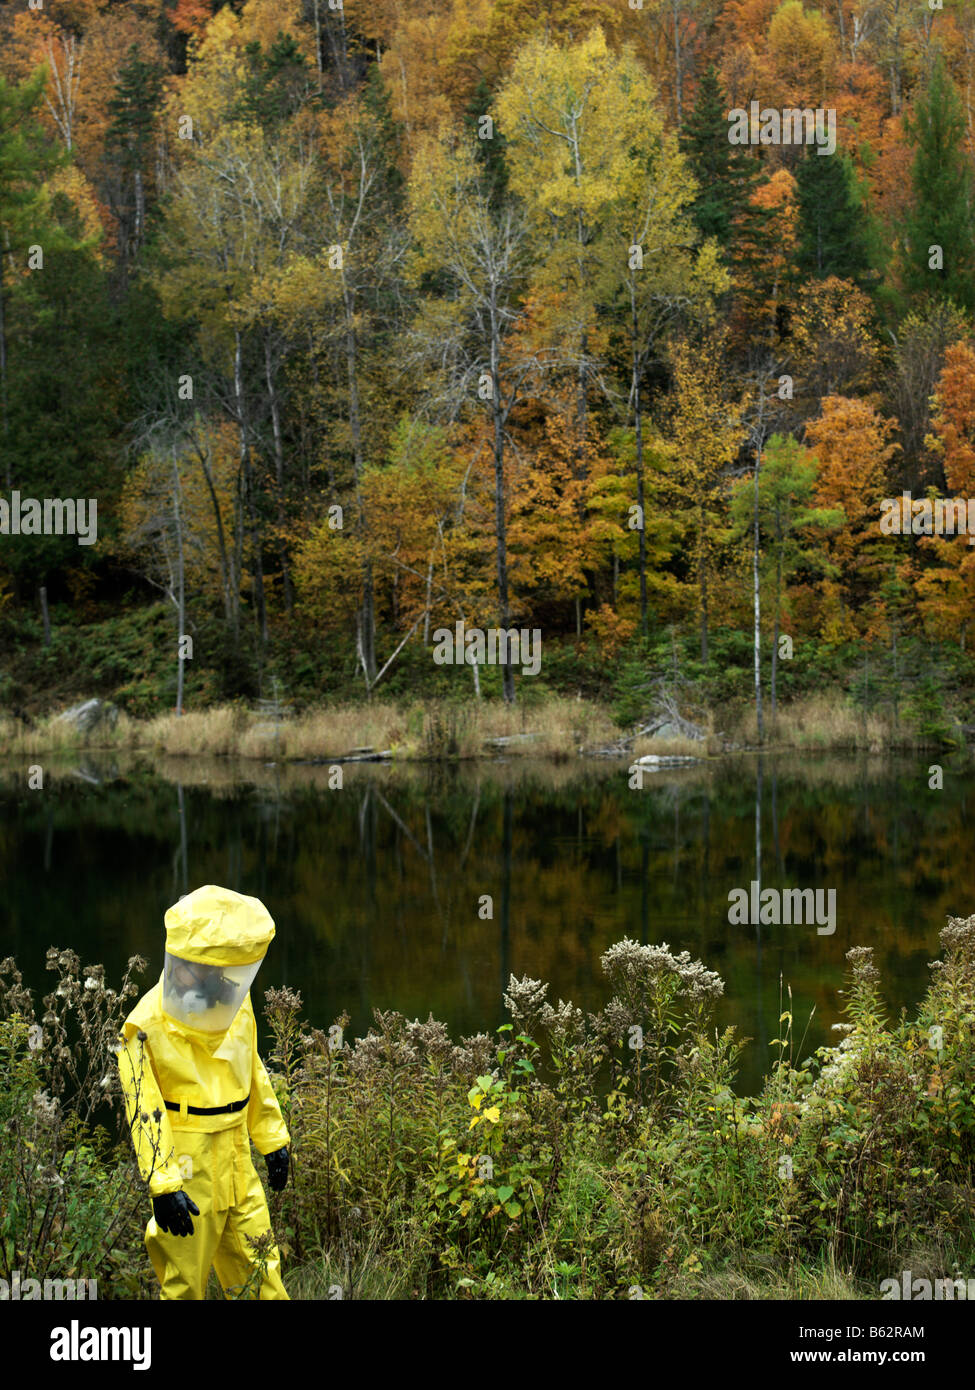 43 year old asian male in a hazmat suit and gas mask outdoors with the fall colours and foliage - Stock Image